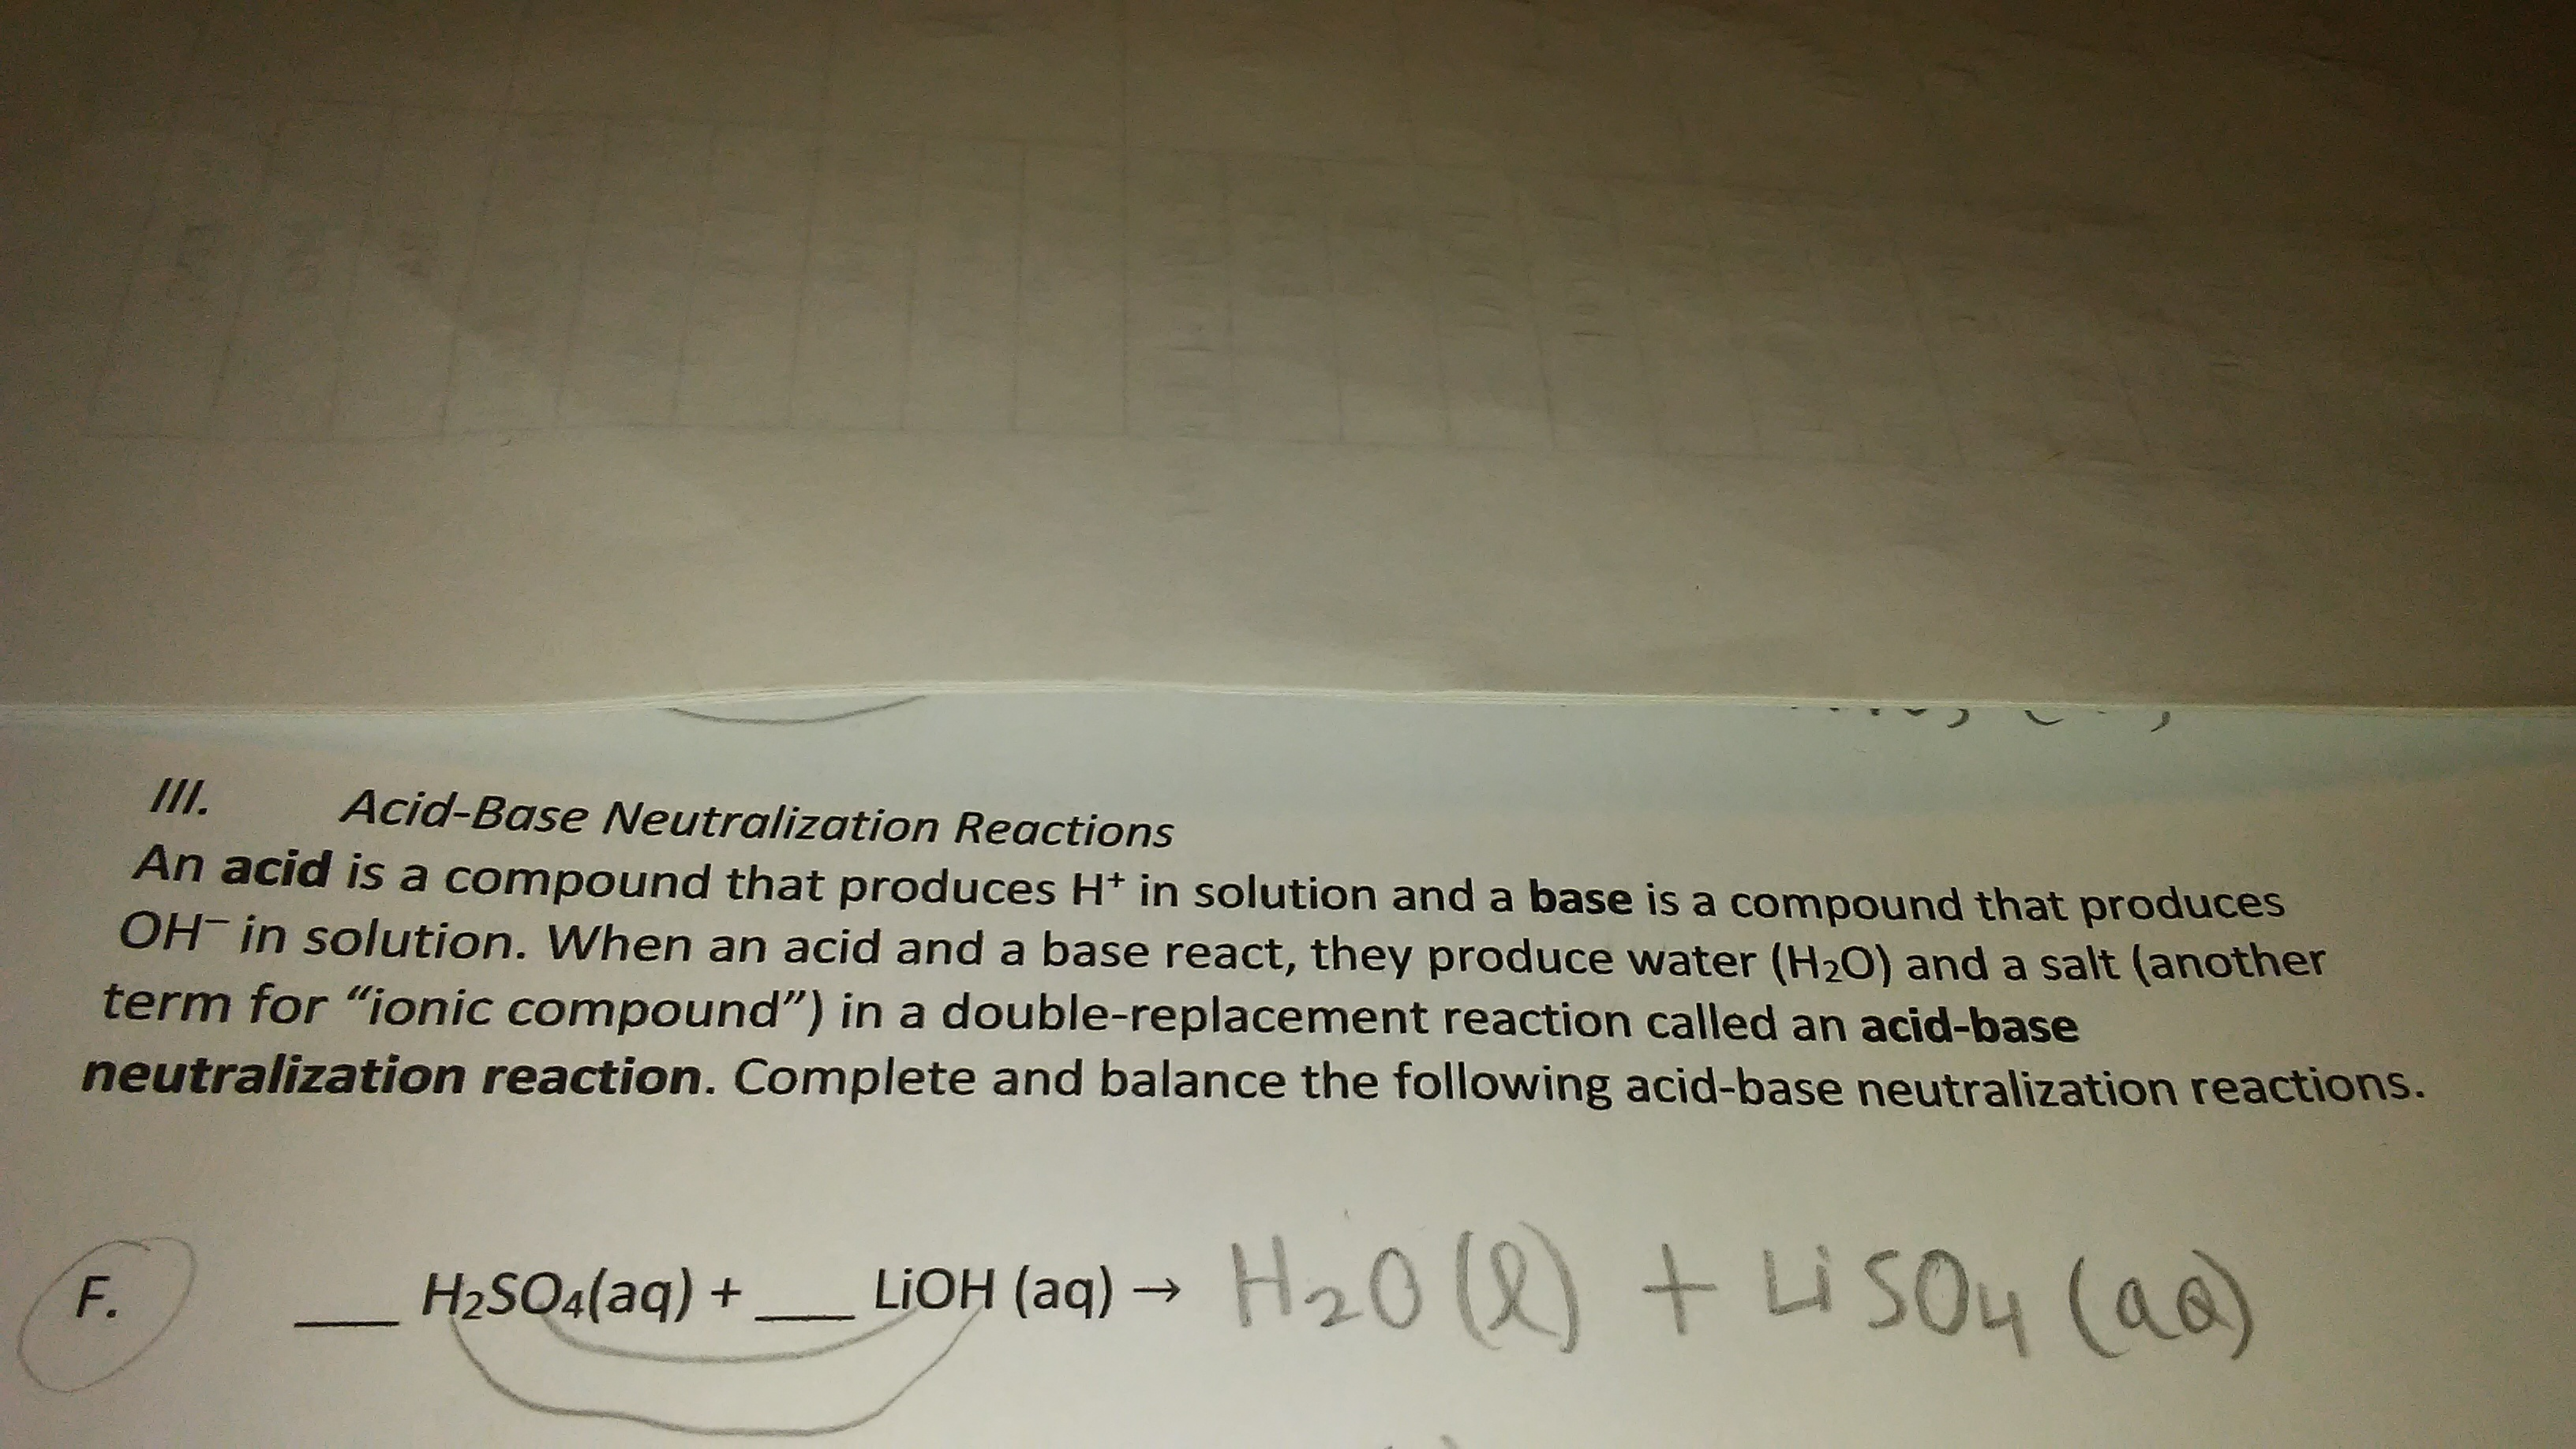 Answered Veuranzuion Reaeetotns An Acid Is A